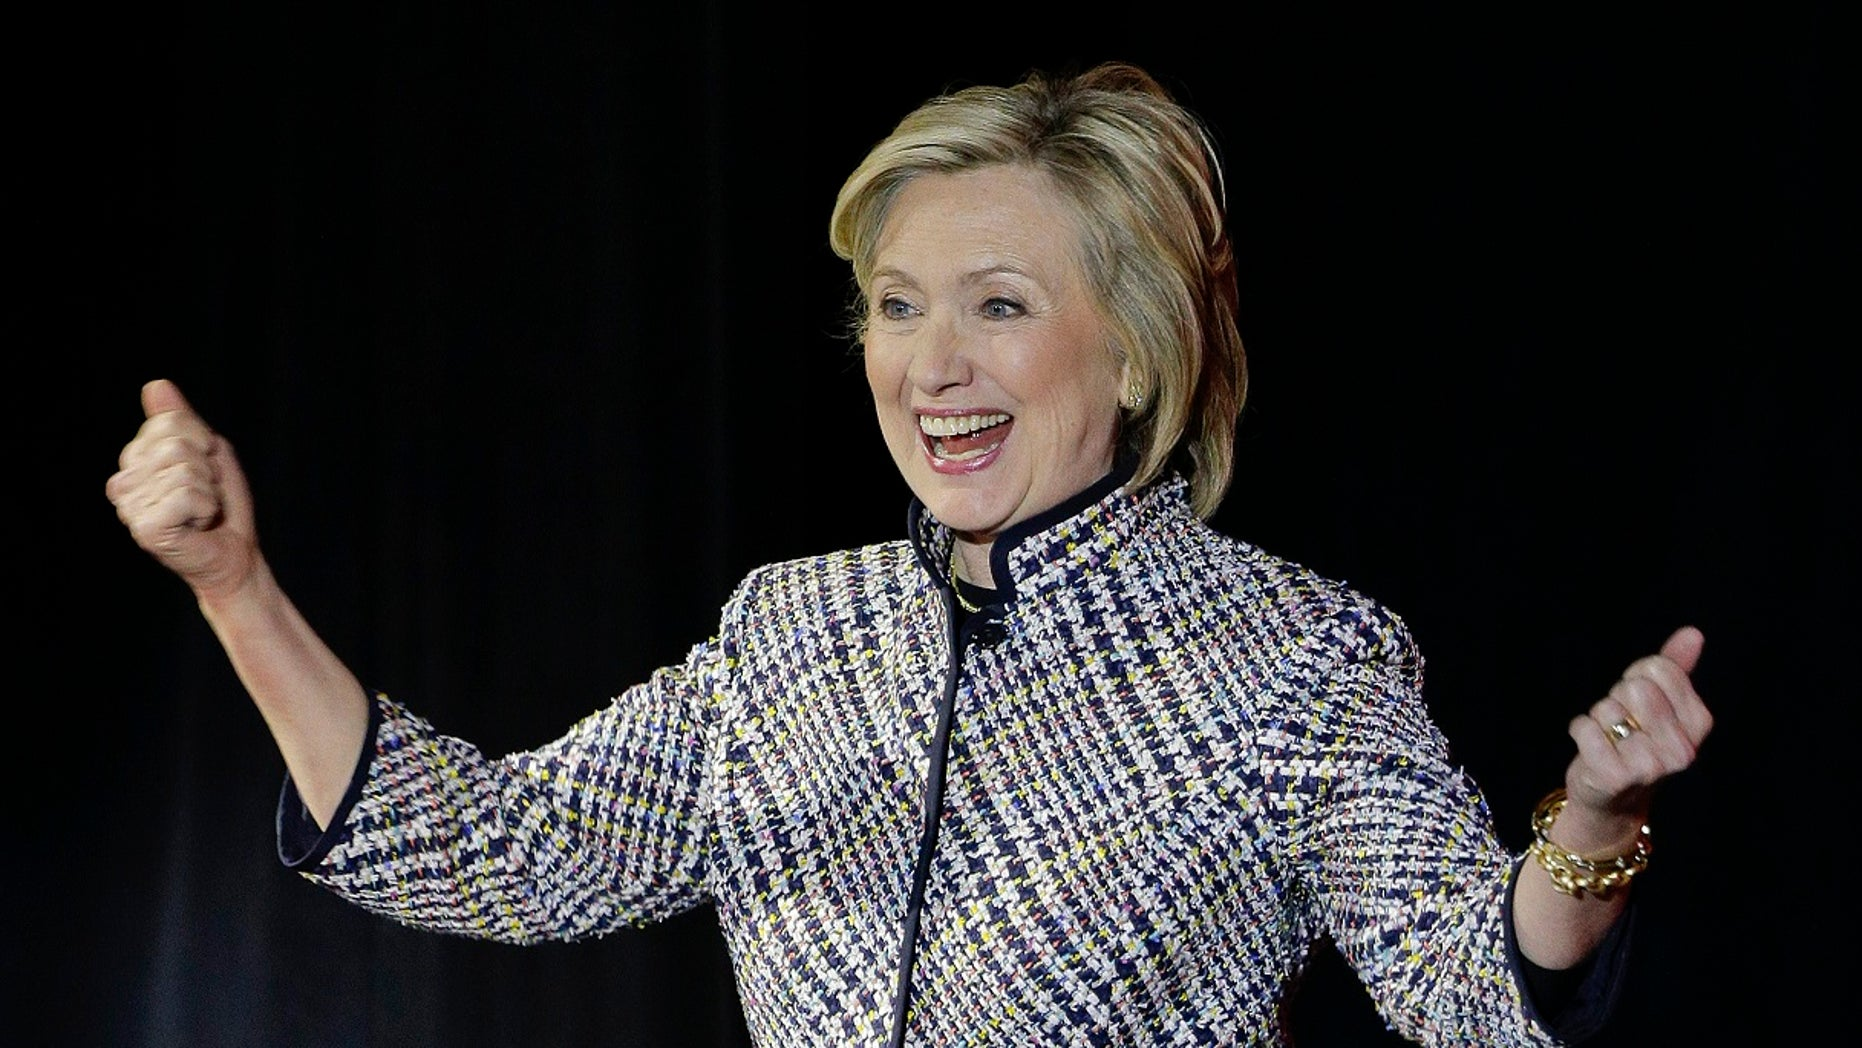 Hillary Rodham Clinton reacts to applause from the crowd before speaking during the sixth annual Women in the World Summit, Thursday, April 23, 2015, in New York. (AP Photo/Julie Jacobson)